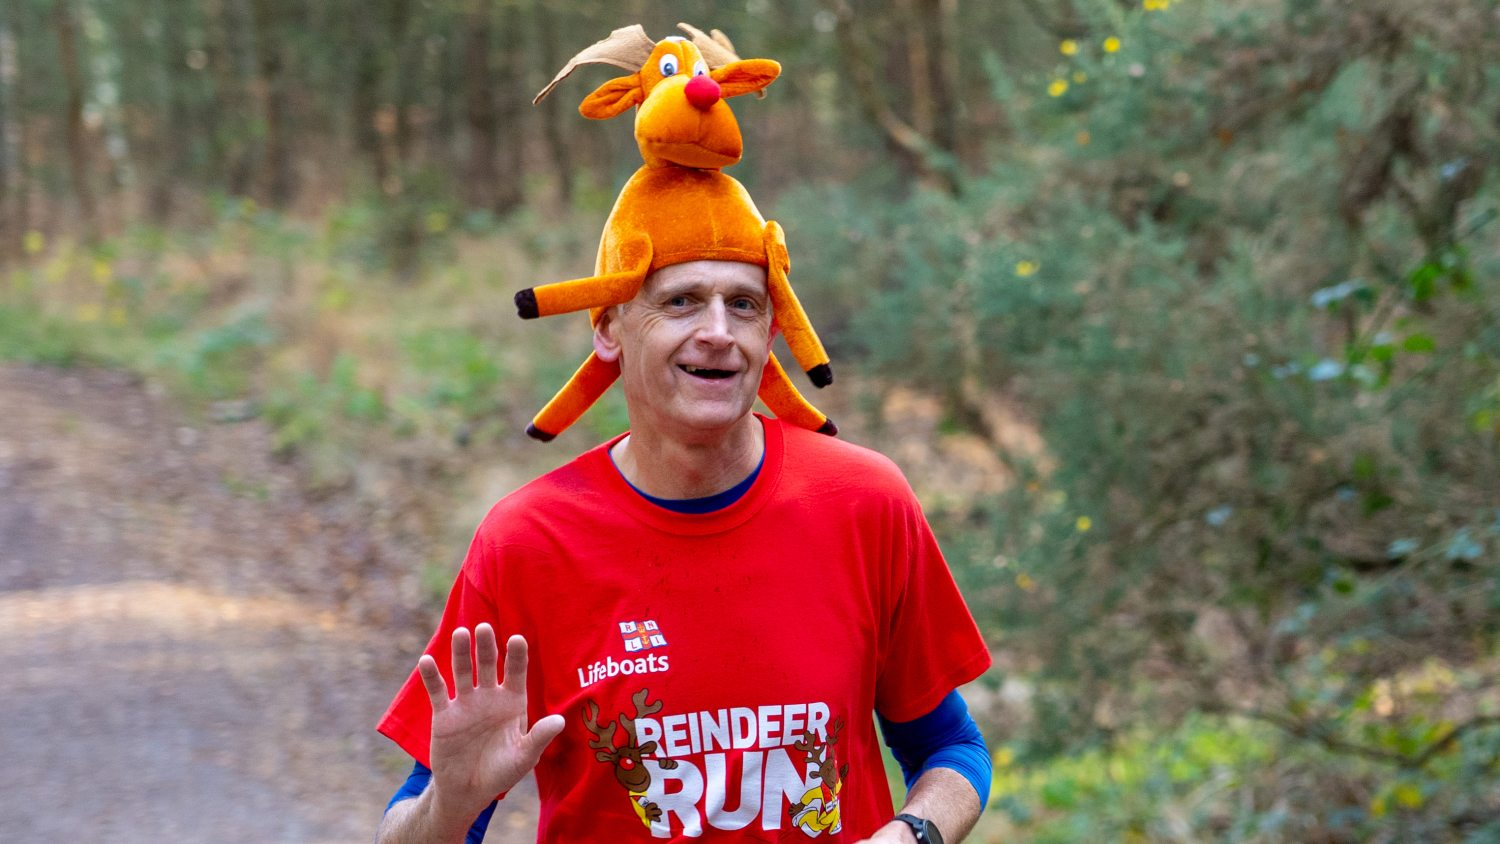 A man running the Reindeer Run in the woods wearing a reindeer-shaped hat.